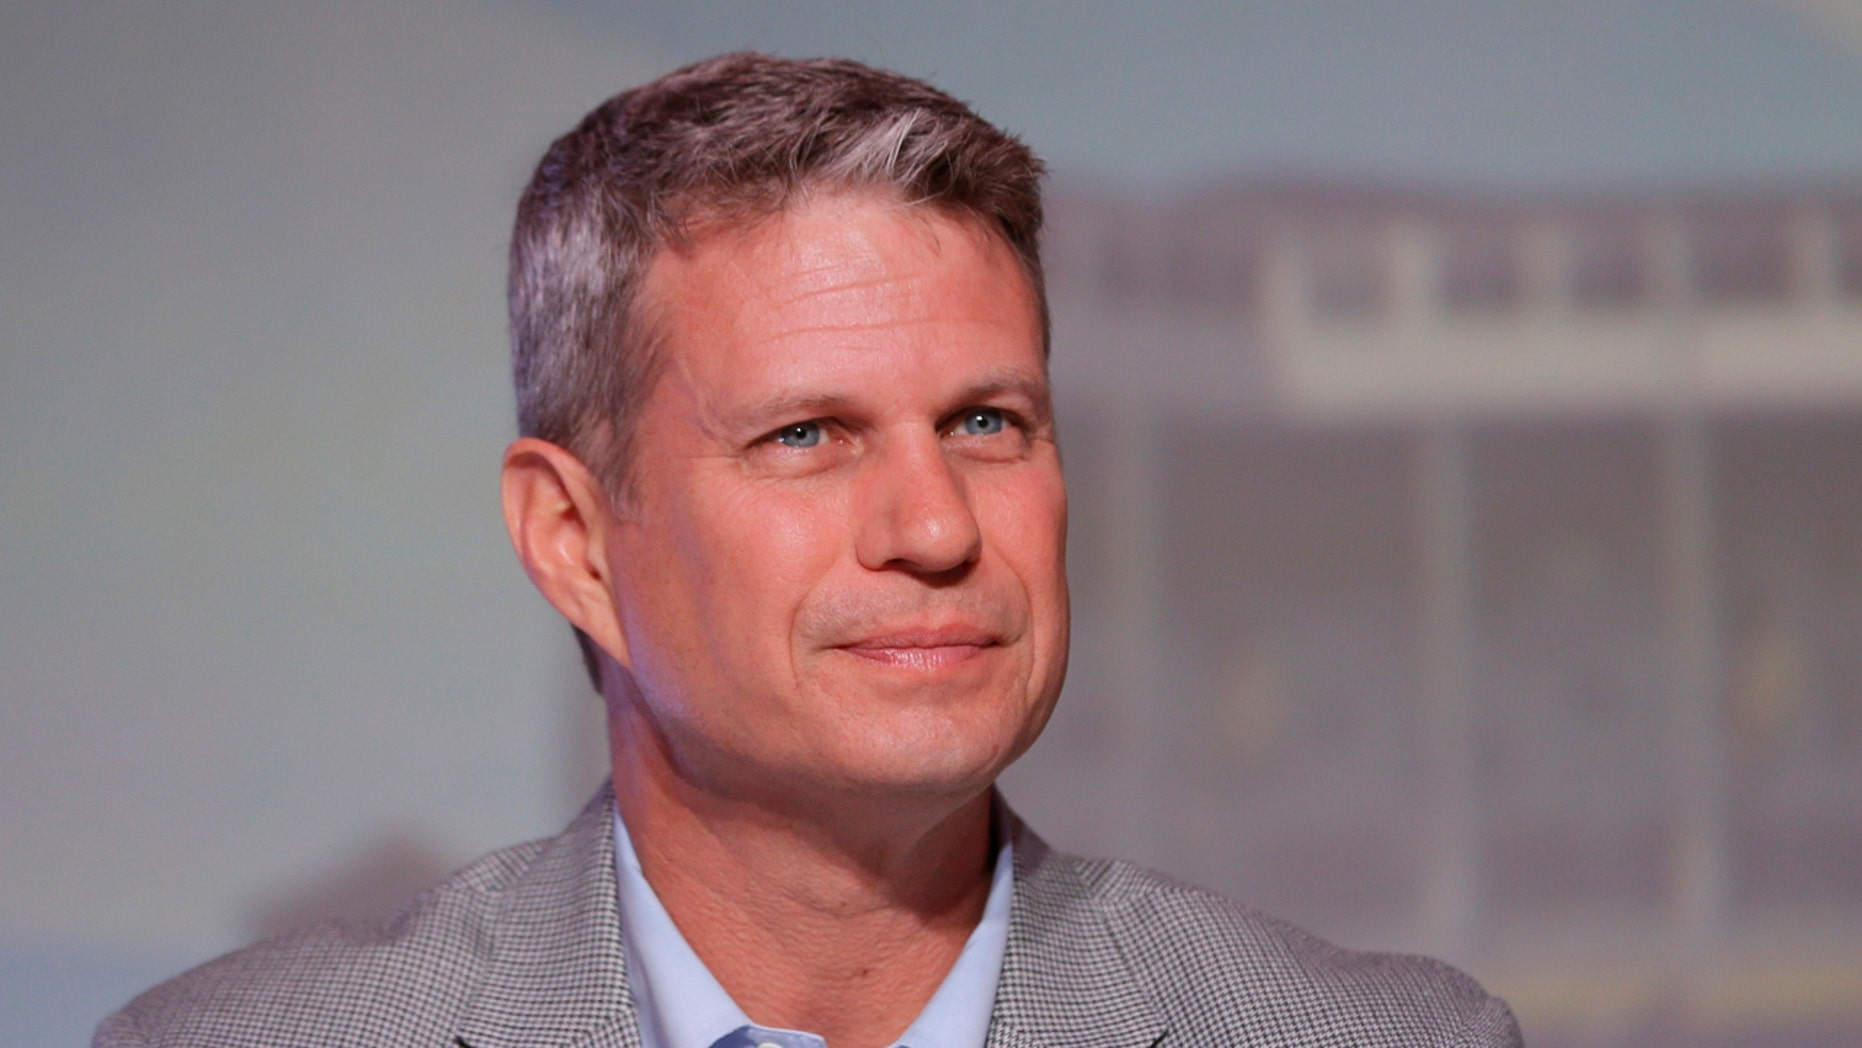 FILE - In this Sept. 19, 2015, file photo, Rep. Bill Huizenga, R-Mich., is seen during a congressional panel at the 2016 Mackinac Republican Leadership Conference in Mackinac Island, Mich.